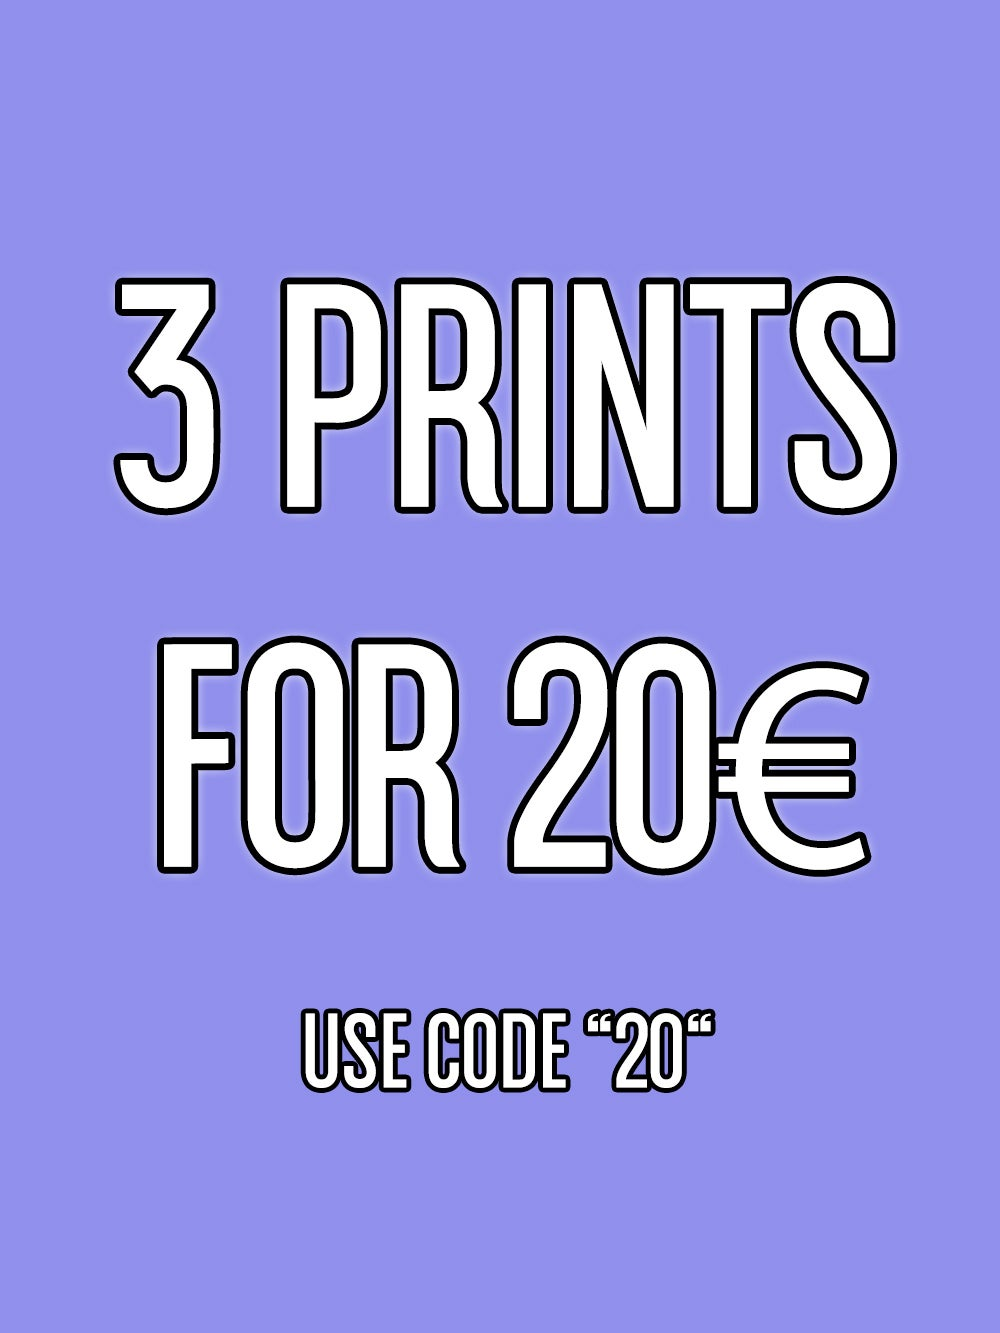 Image of GET 3 PRINTS FOR 20€ NOW